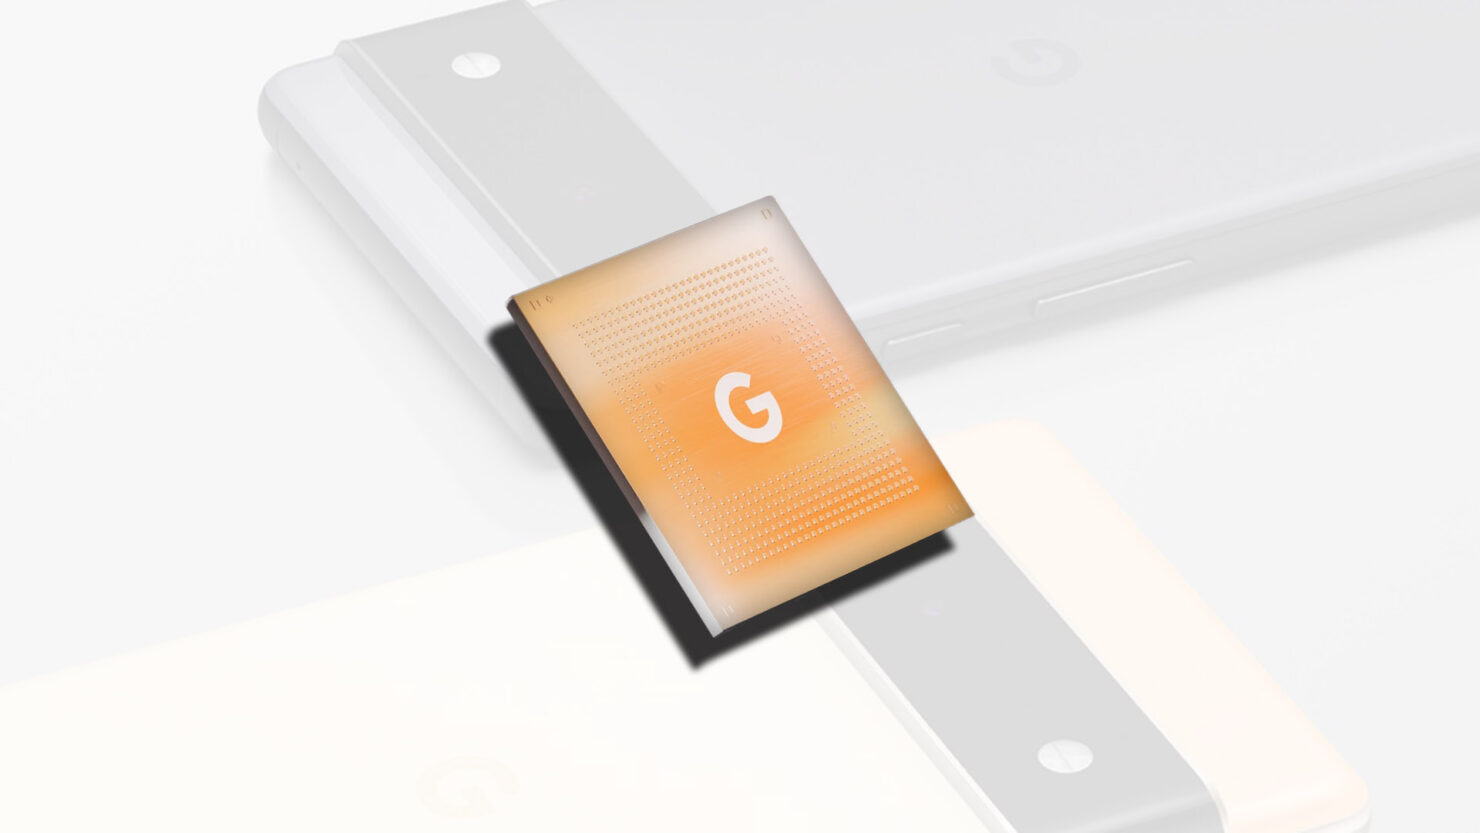 Google's Tensor SoC for Pixel 6, Pixel 6 Pro to Be up to 80 Percent Faster, Leading to Faster App Loading & a More Responsive Device